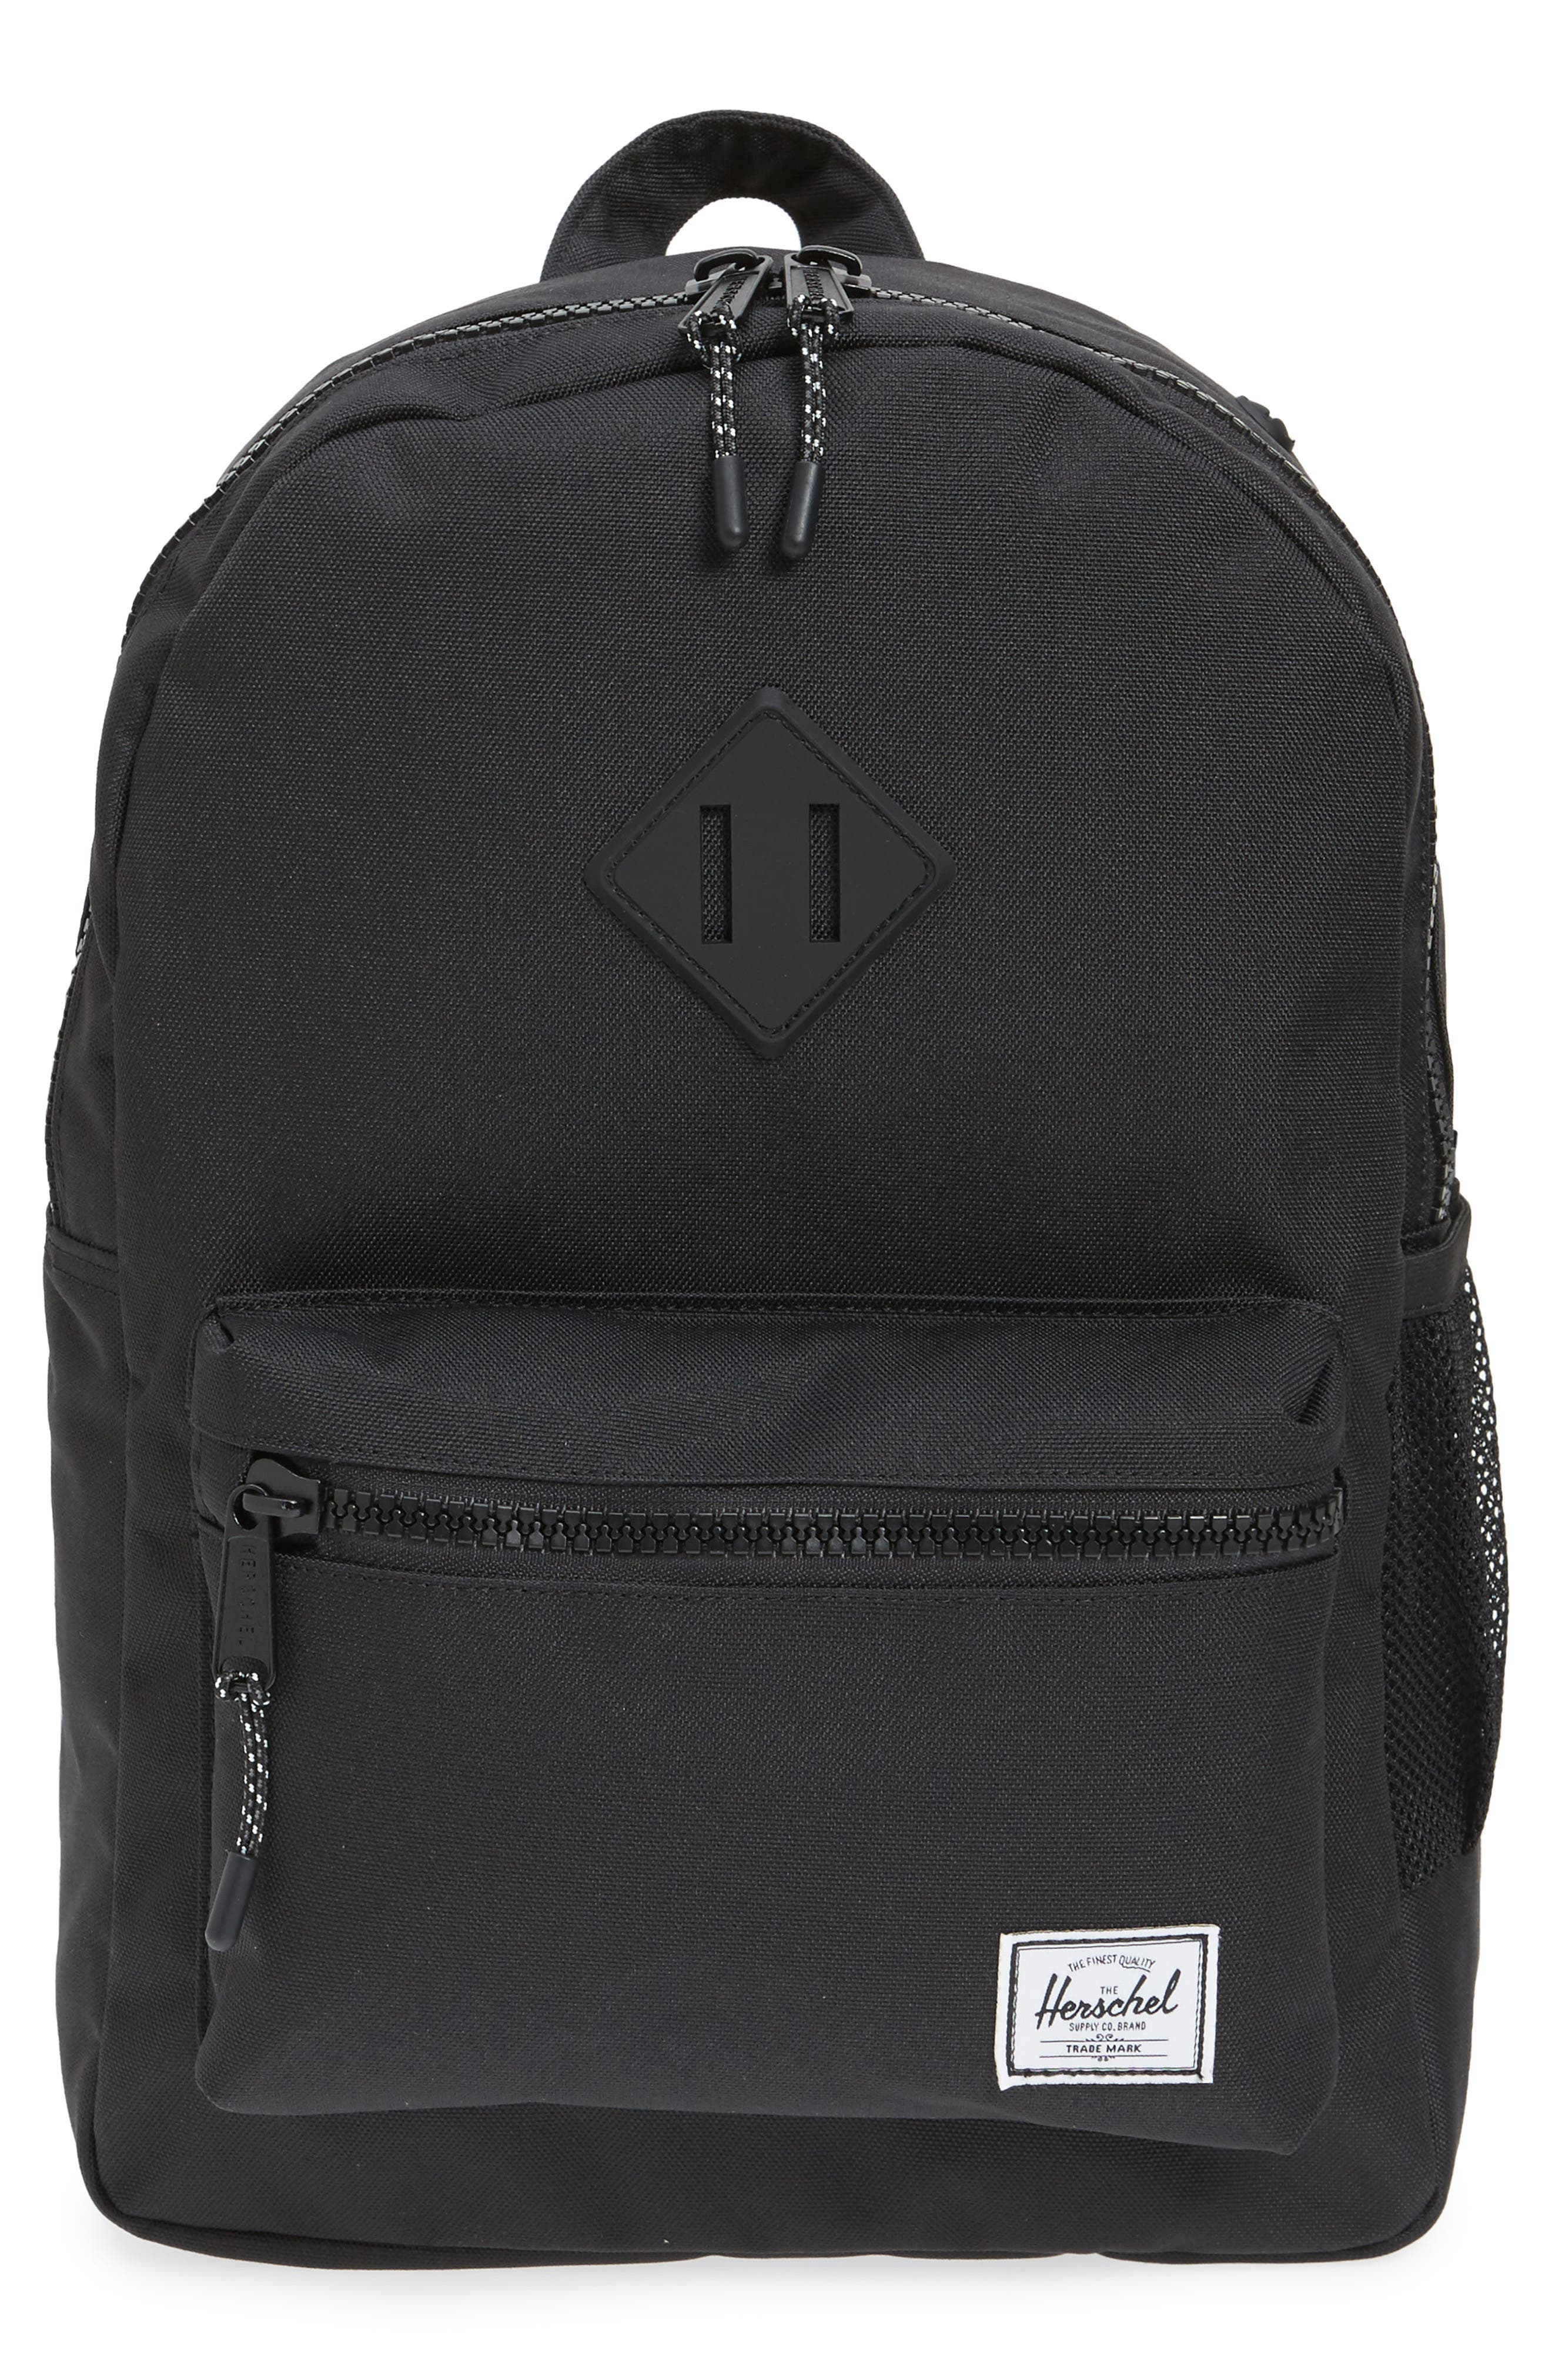 Heritage Backpack,                             Main thumbnail 1, color,